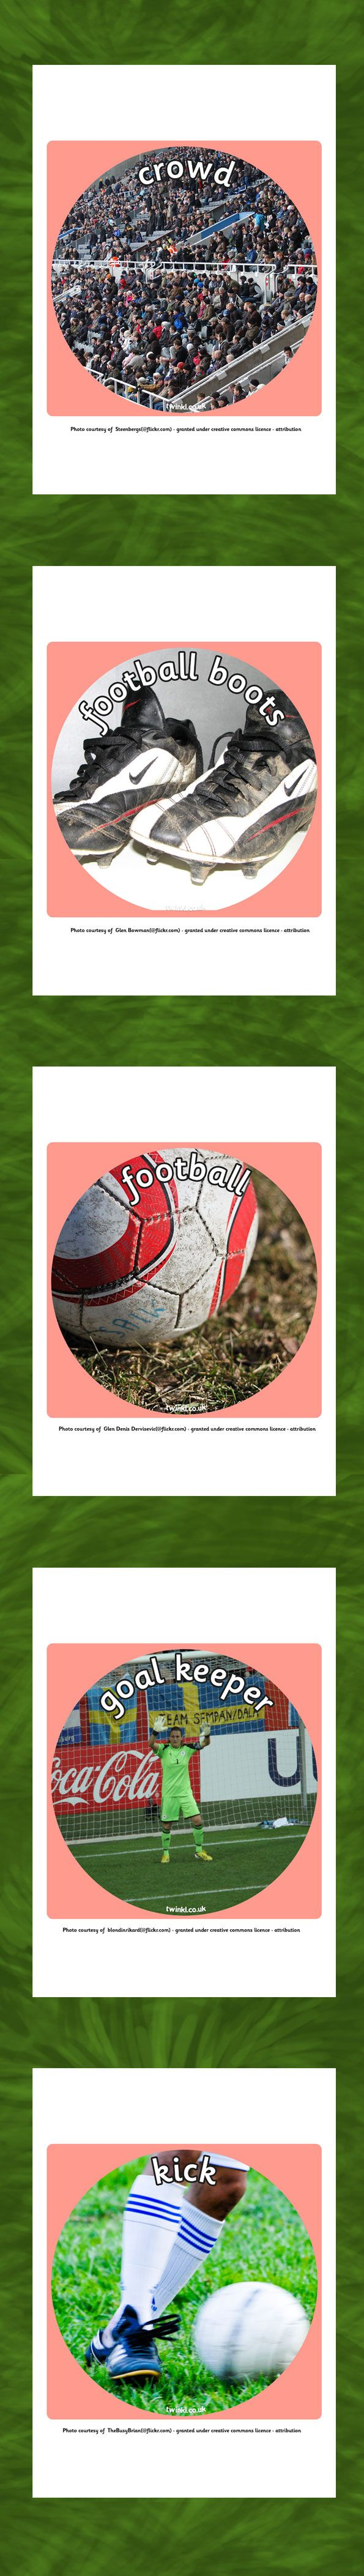 197 best sports images on pinterest primary resources student